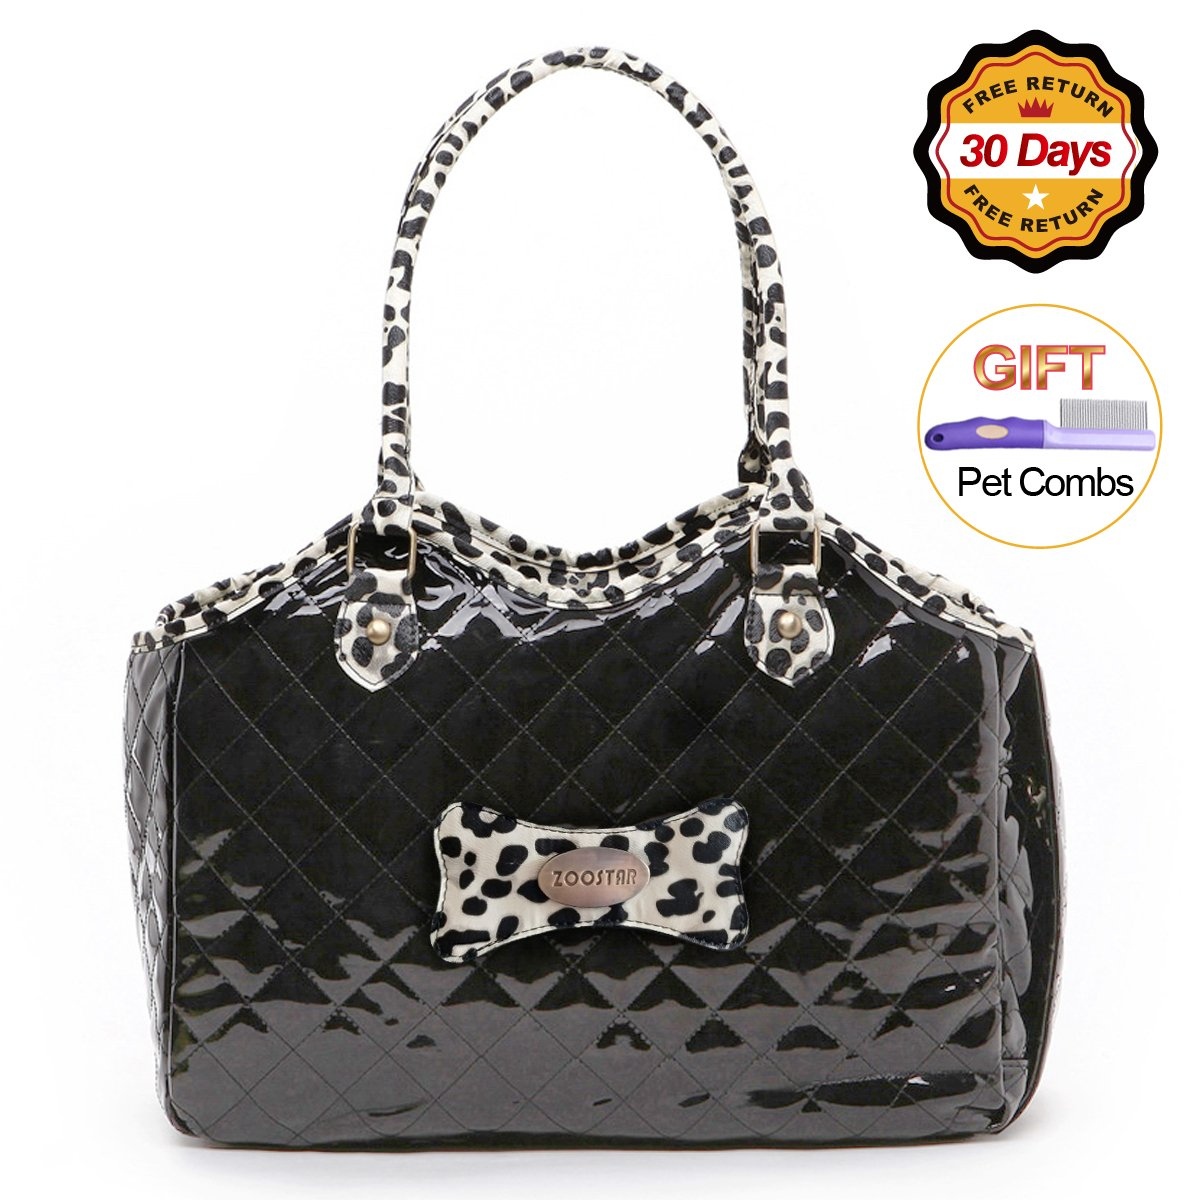 Dog Carrier Purse Pet Travel Bag Cat Portable Handbag,Soft Sided Tote with 2 Fleece Pads for Small Pets,Come with a Pet Comb,Up to 15lbs,Easy to Storage,Go Hiking Shopping with Your Doggy (black) by ZOOSTAR (Image #1)